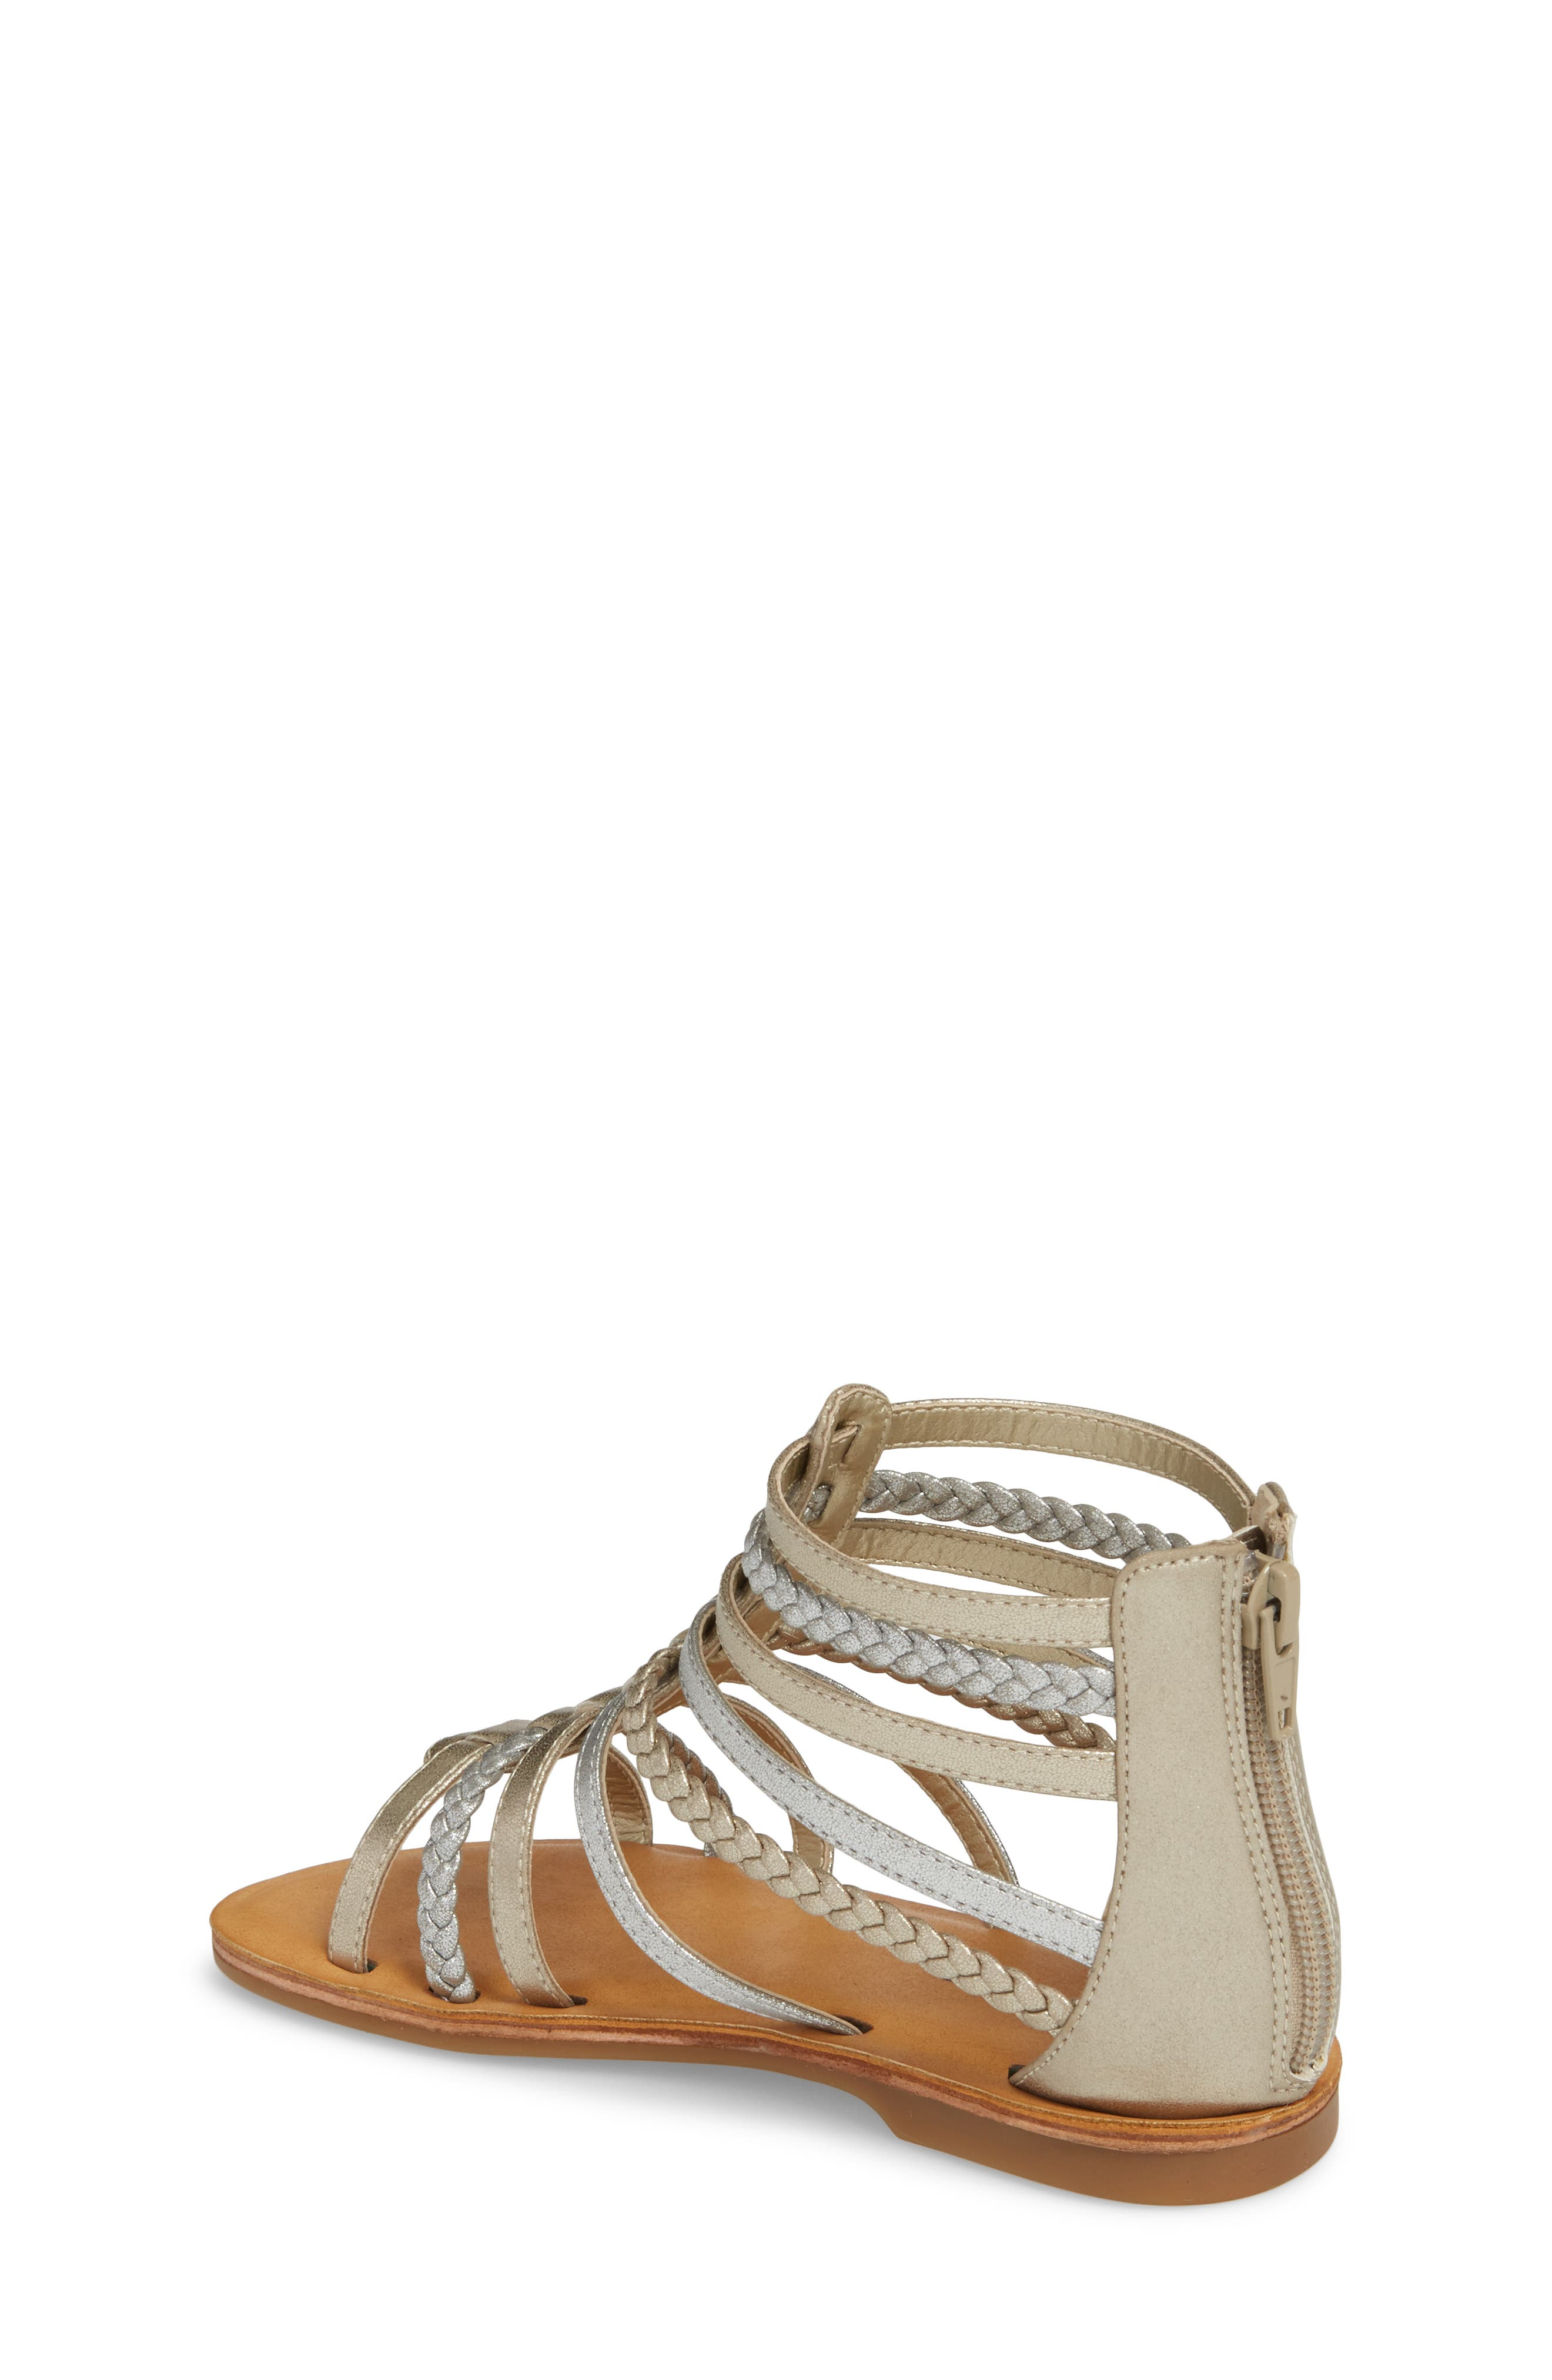 Sonja Braided Gladiator Sandal,                             Alternate thumbnail 2, color,                             Silver/ Gold Faux Leather